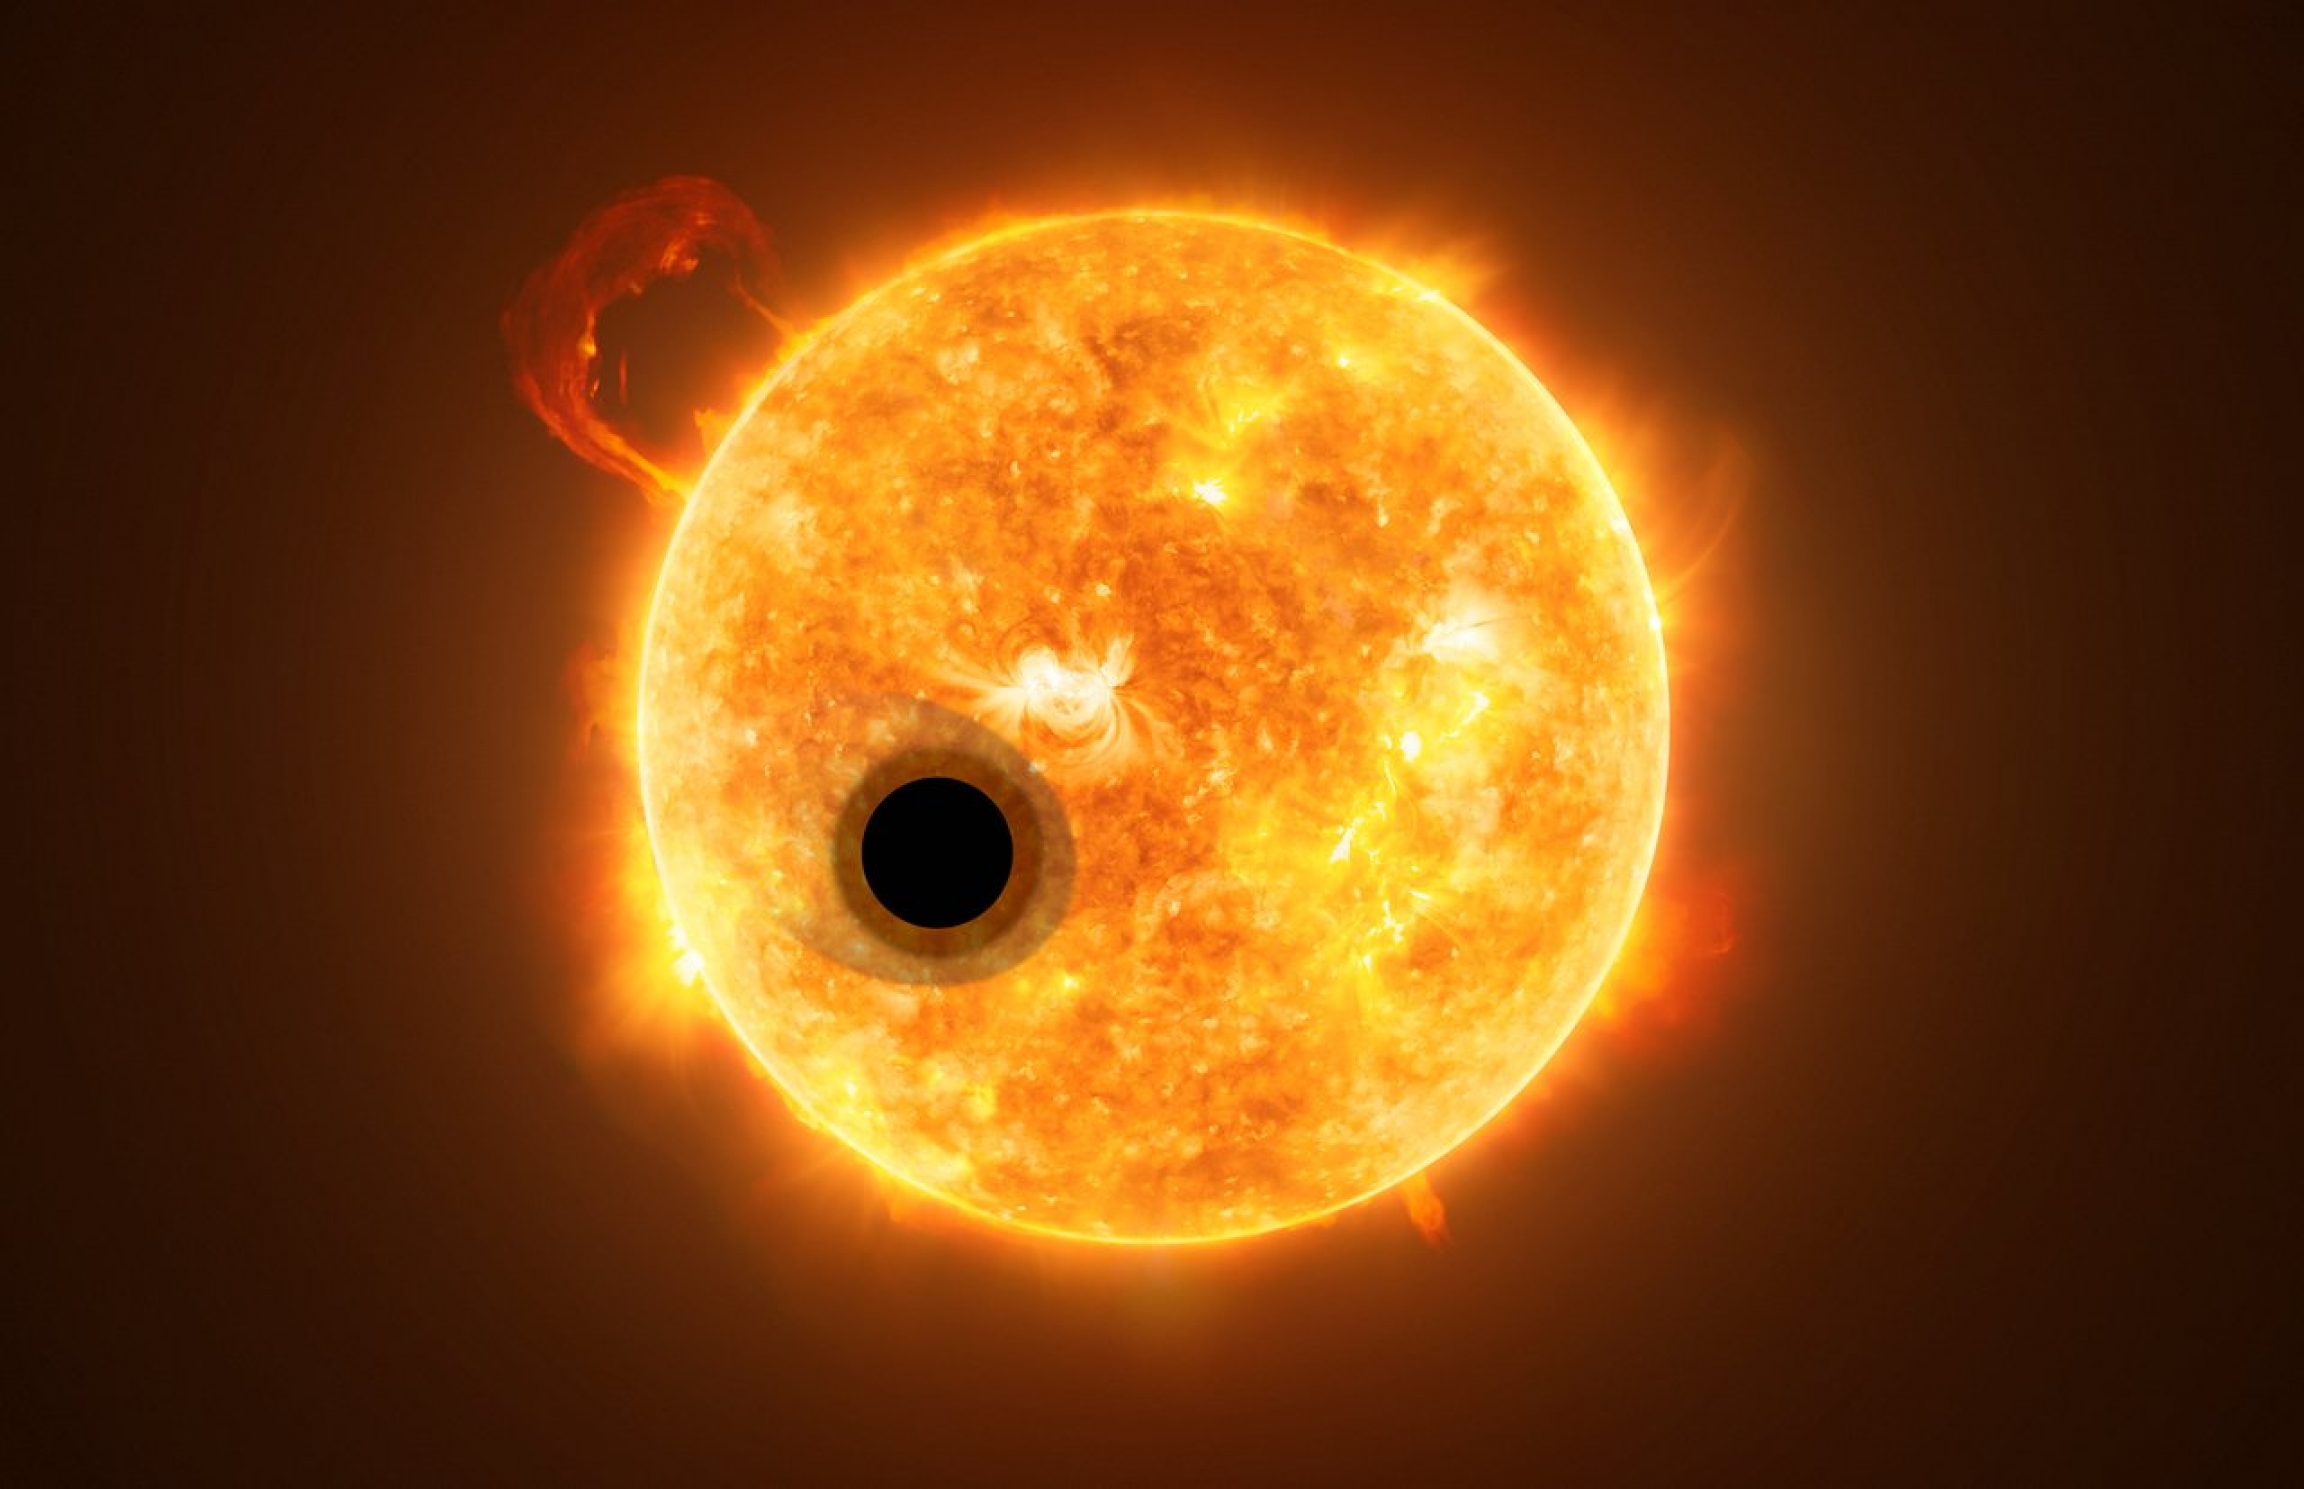 Exoplanet WASP-107b is a gas giant, orbiting a highly active K-type main sequence star. The star is about 200 light-years from Earth.